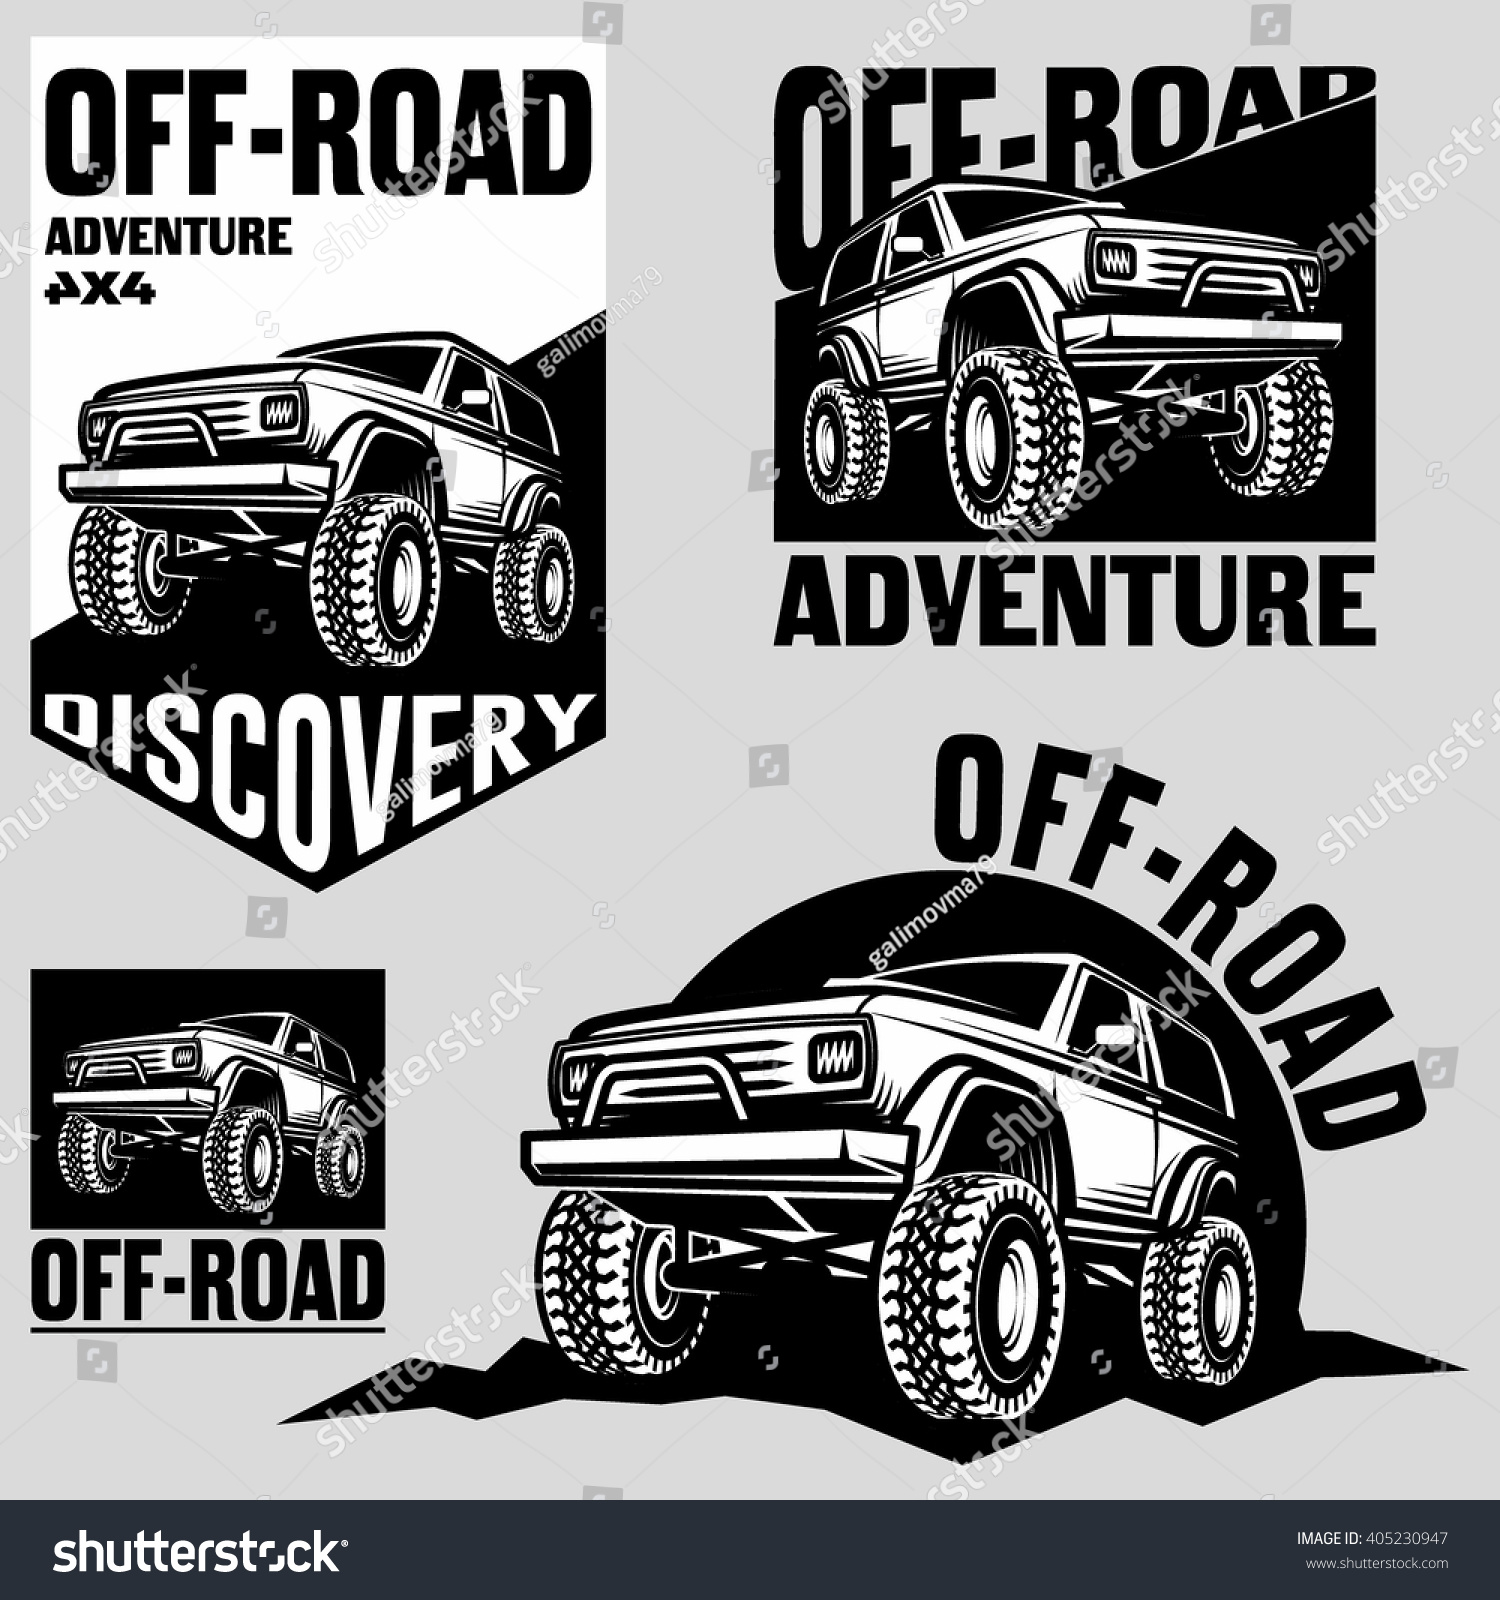 Royalty Free Off Road Car Club Classic Design 405230947 Stock